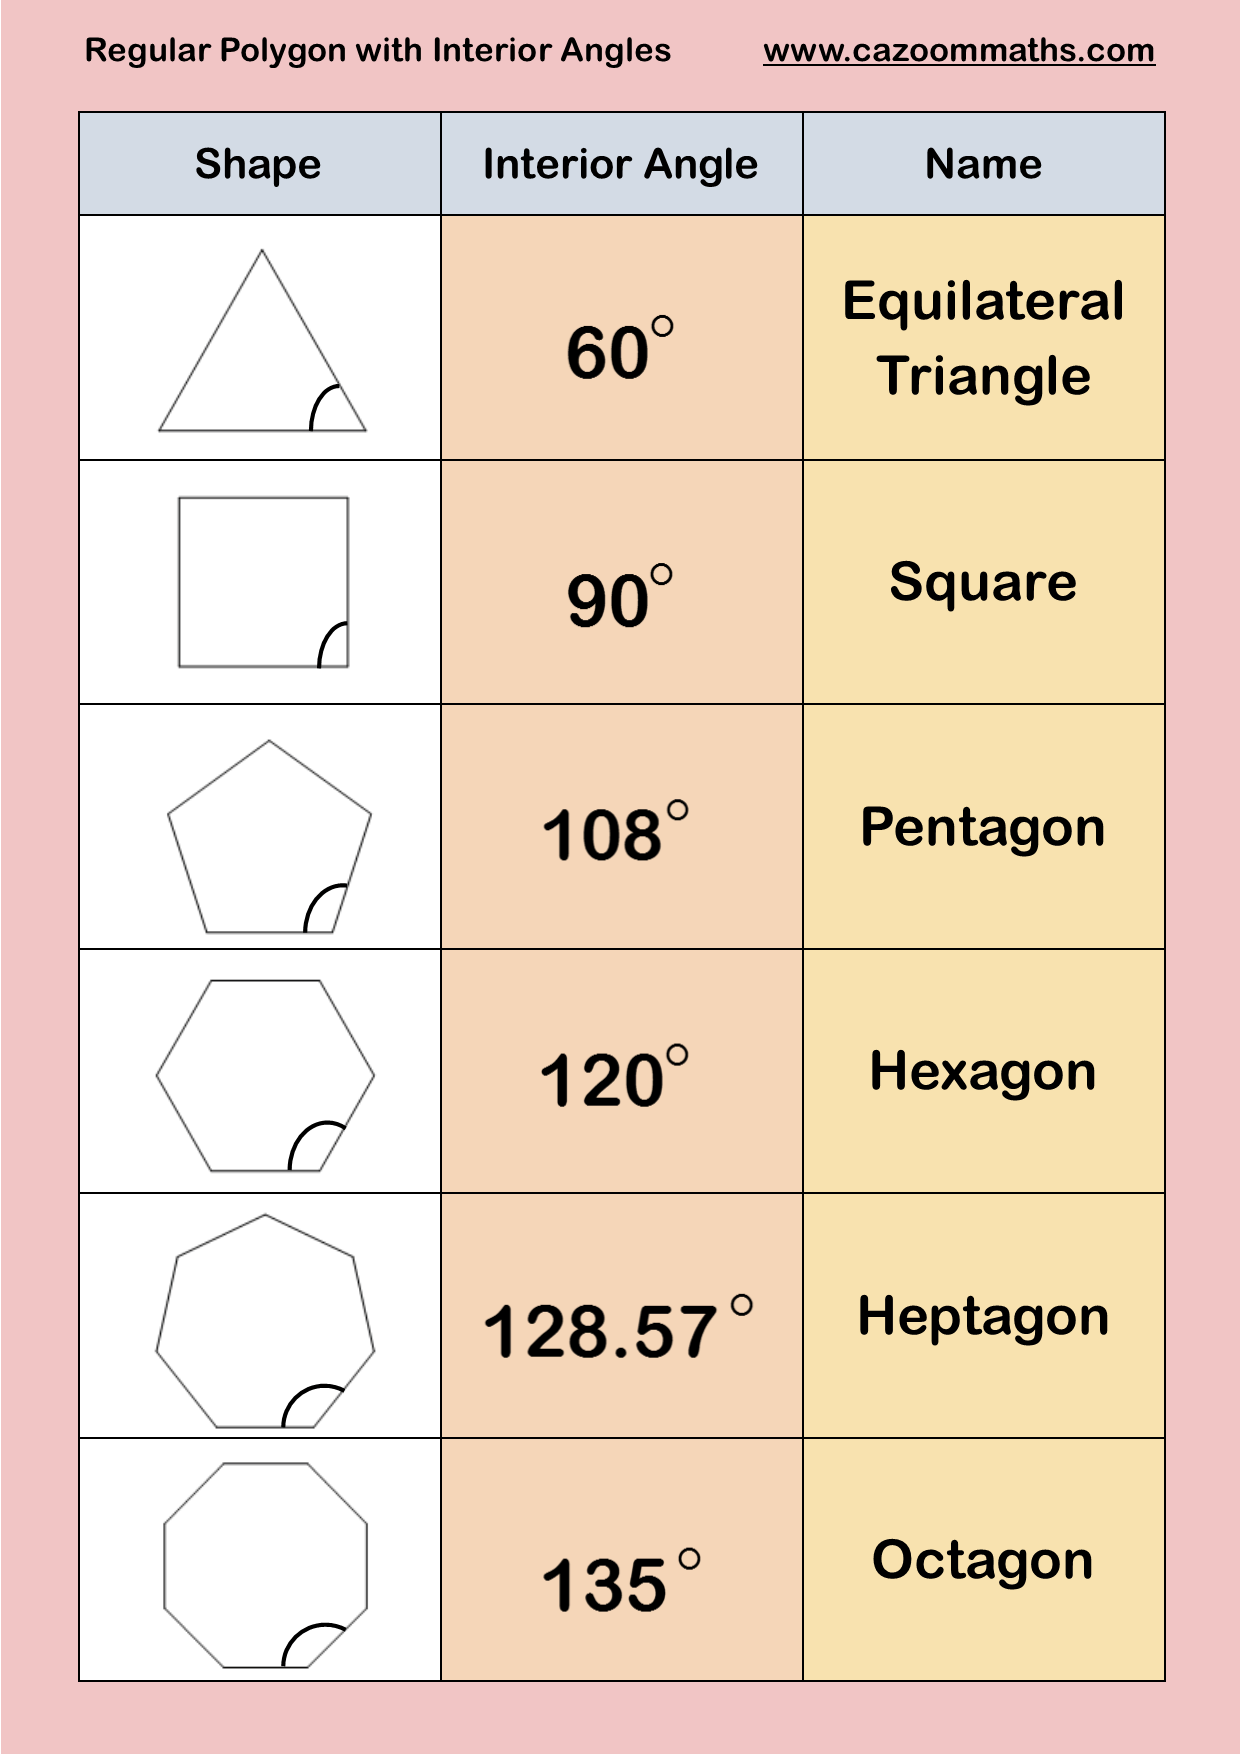 Regular Polygons With Interior Angles